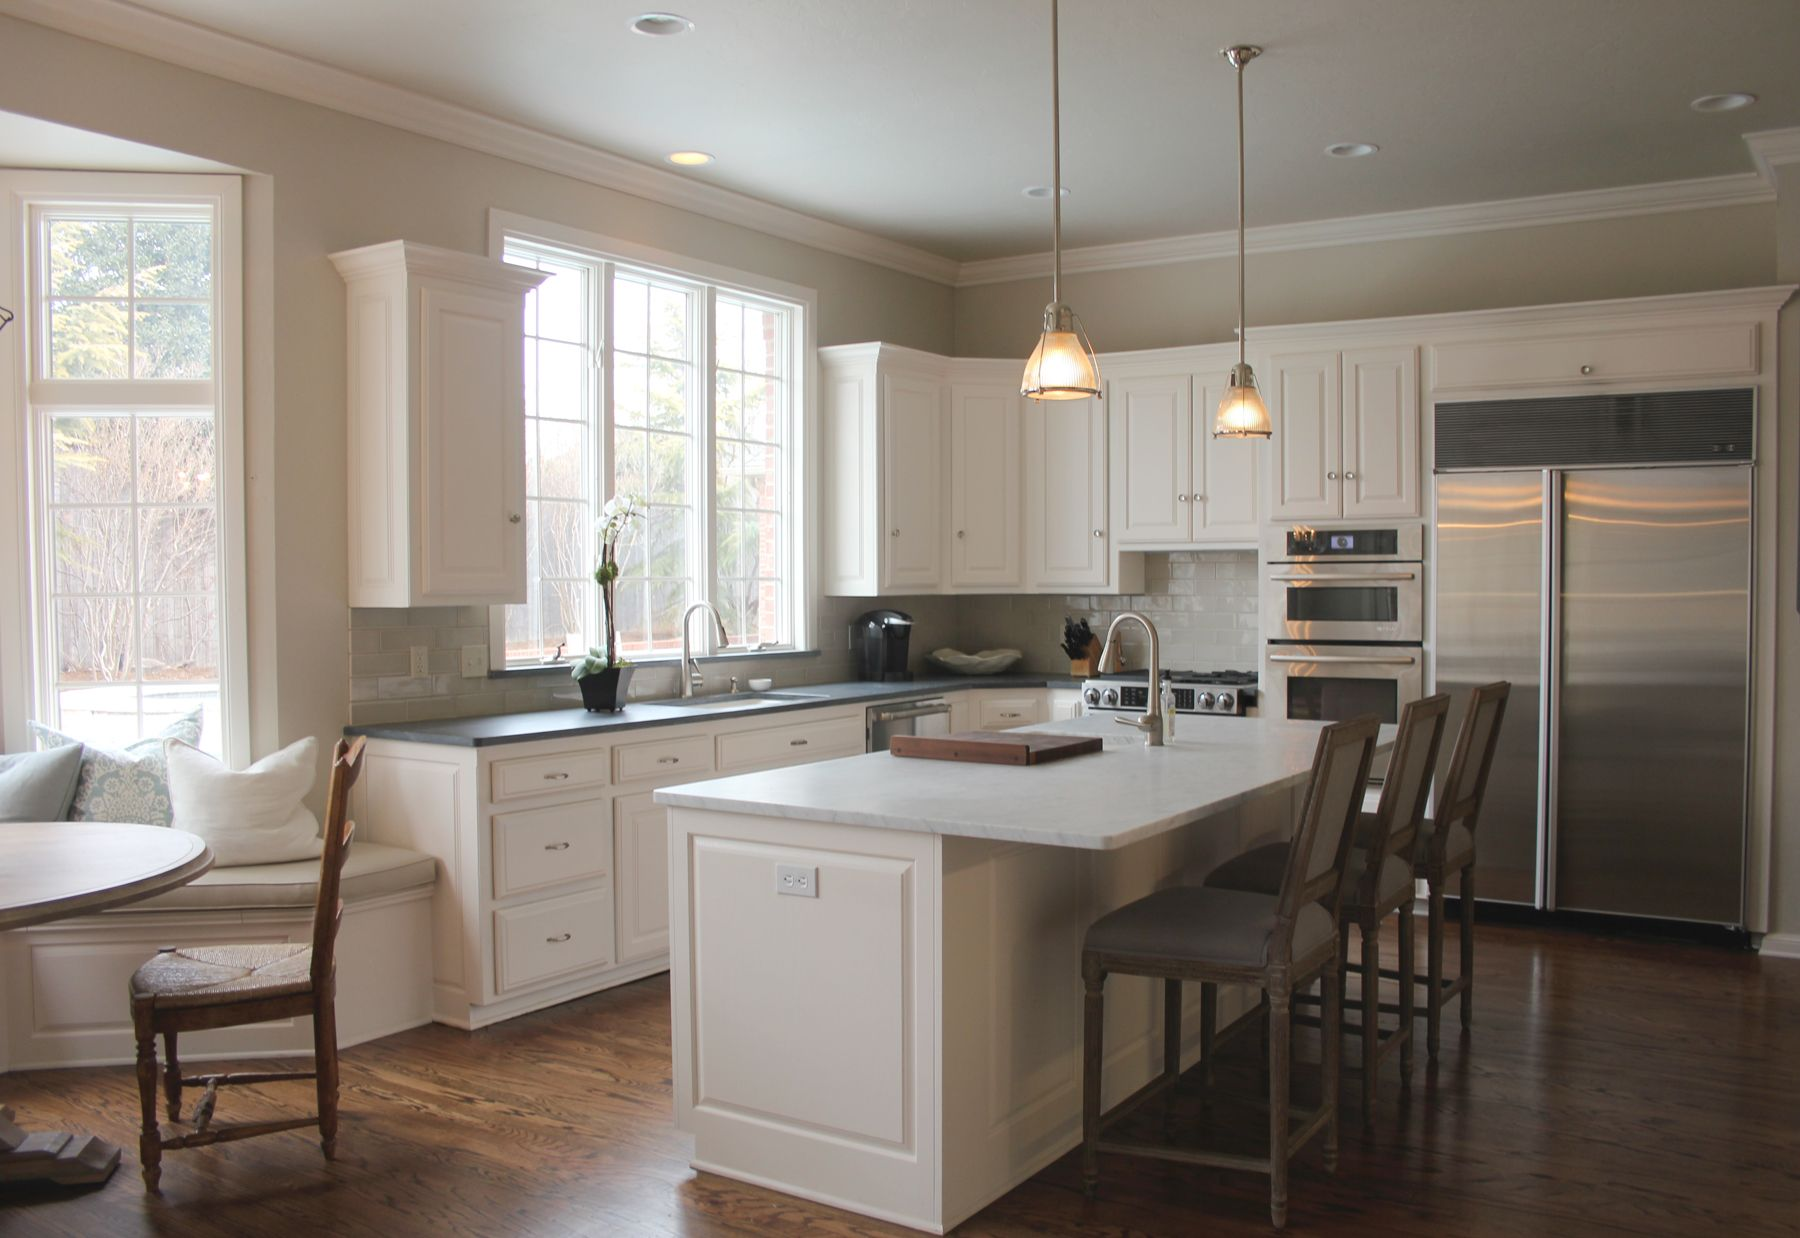 Revere Pewter Kitchen Wall Color Benjamin Moore Revere Pewter Hc